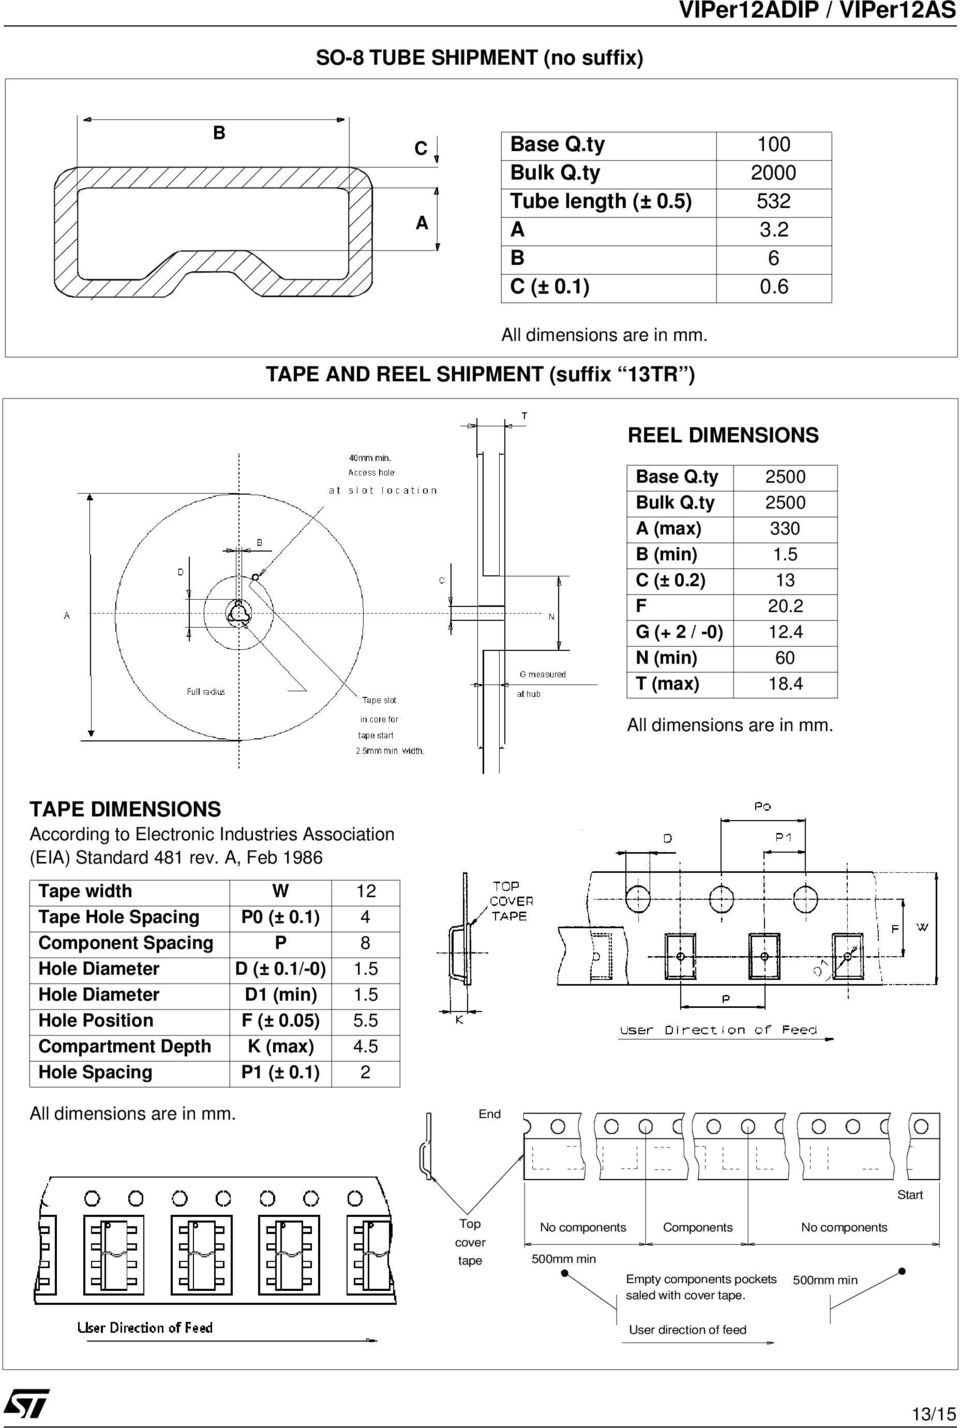 TAPE DIMENSIONS According o Elecronic Indusries Associaion (EIA) Sandard 481 rev. A, Feb 1986 Tape widh W 12 Tape Hole Spacing P0 (± 0.1) 4 Componen Spacing P 8 Hole Diameer D (± 0.1/-0) 1.